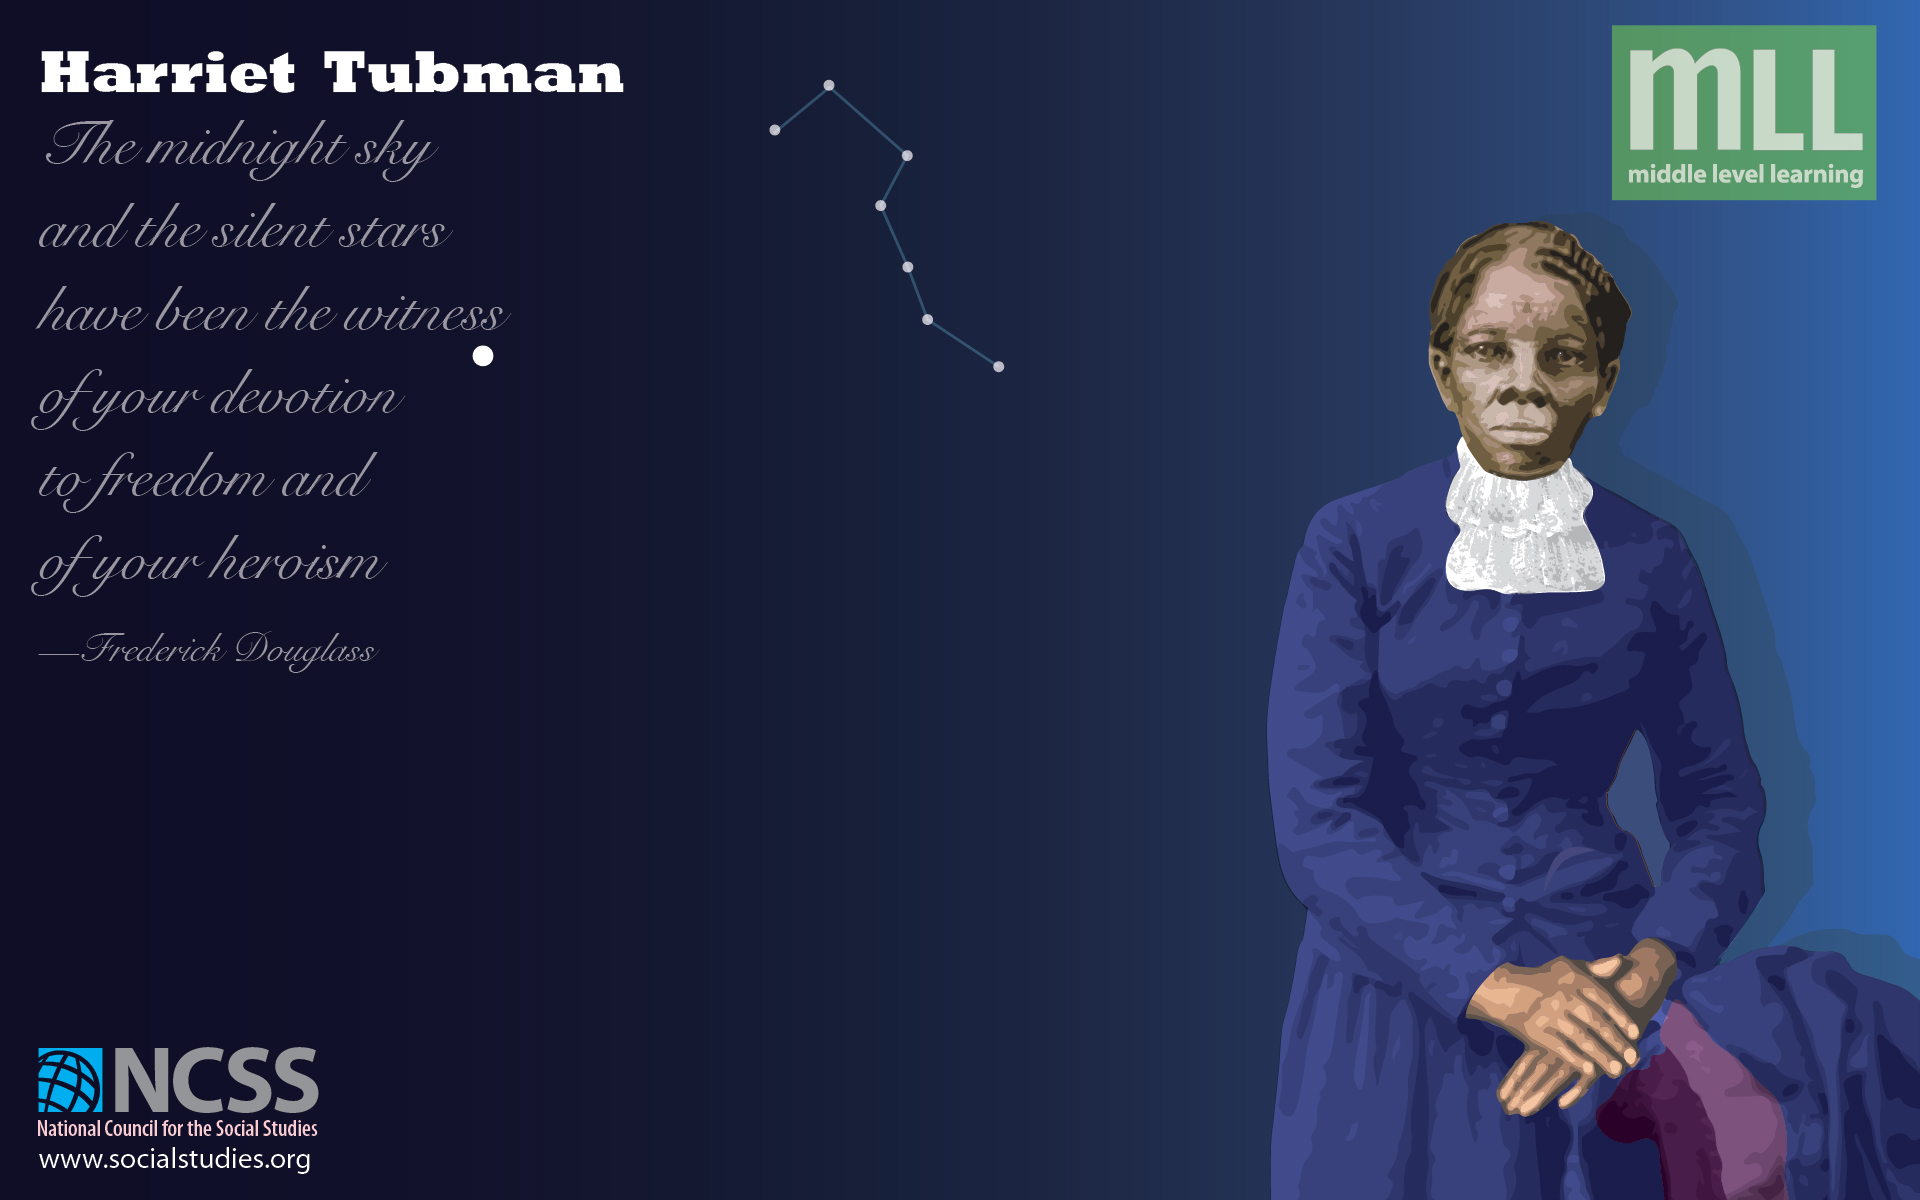 Tubman_Wallpaper.jpg